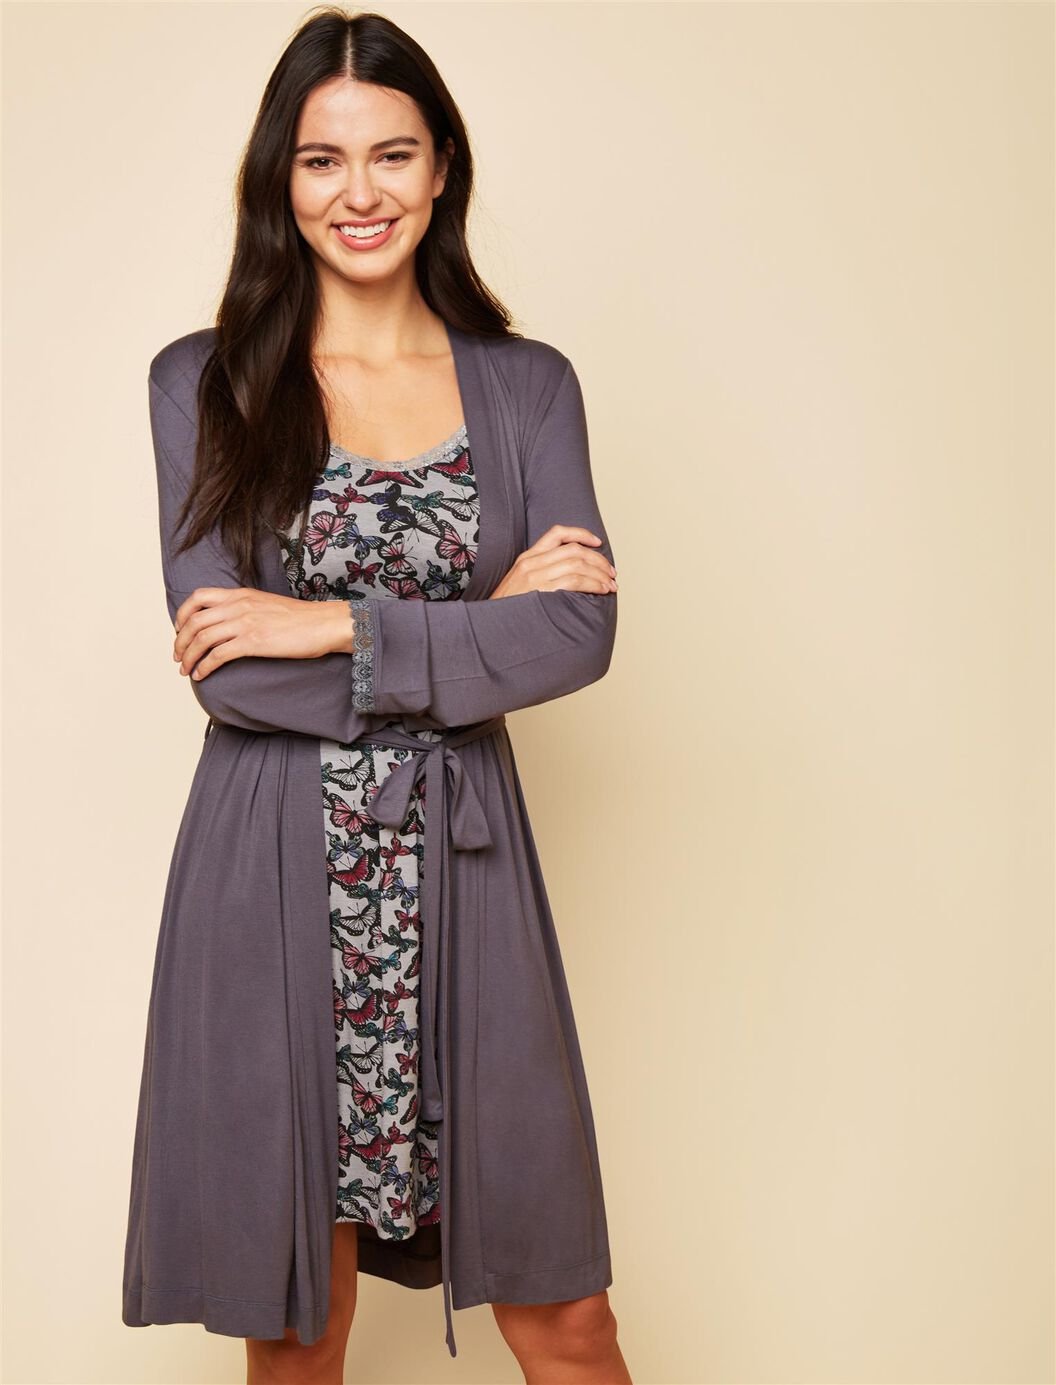 Bump In The Night Tie Front Nursing Robe at Motherhood Maternity in Victor, NY | Tuggl